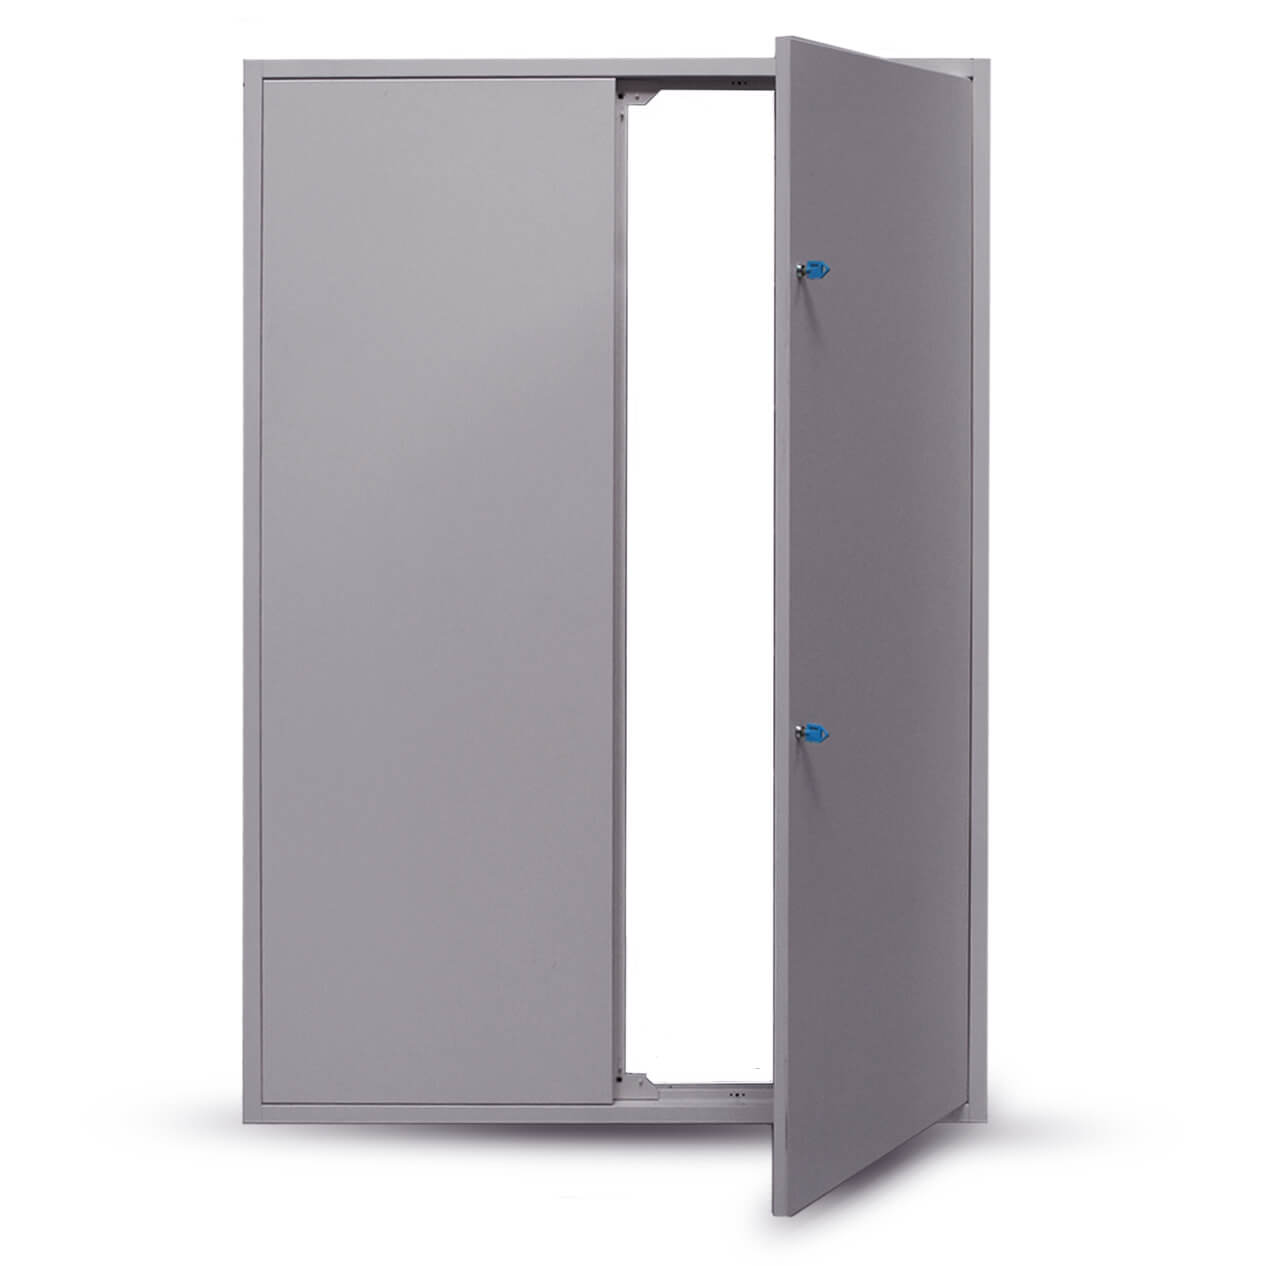 PR Wall Double access panel